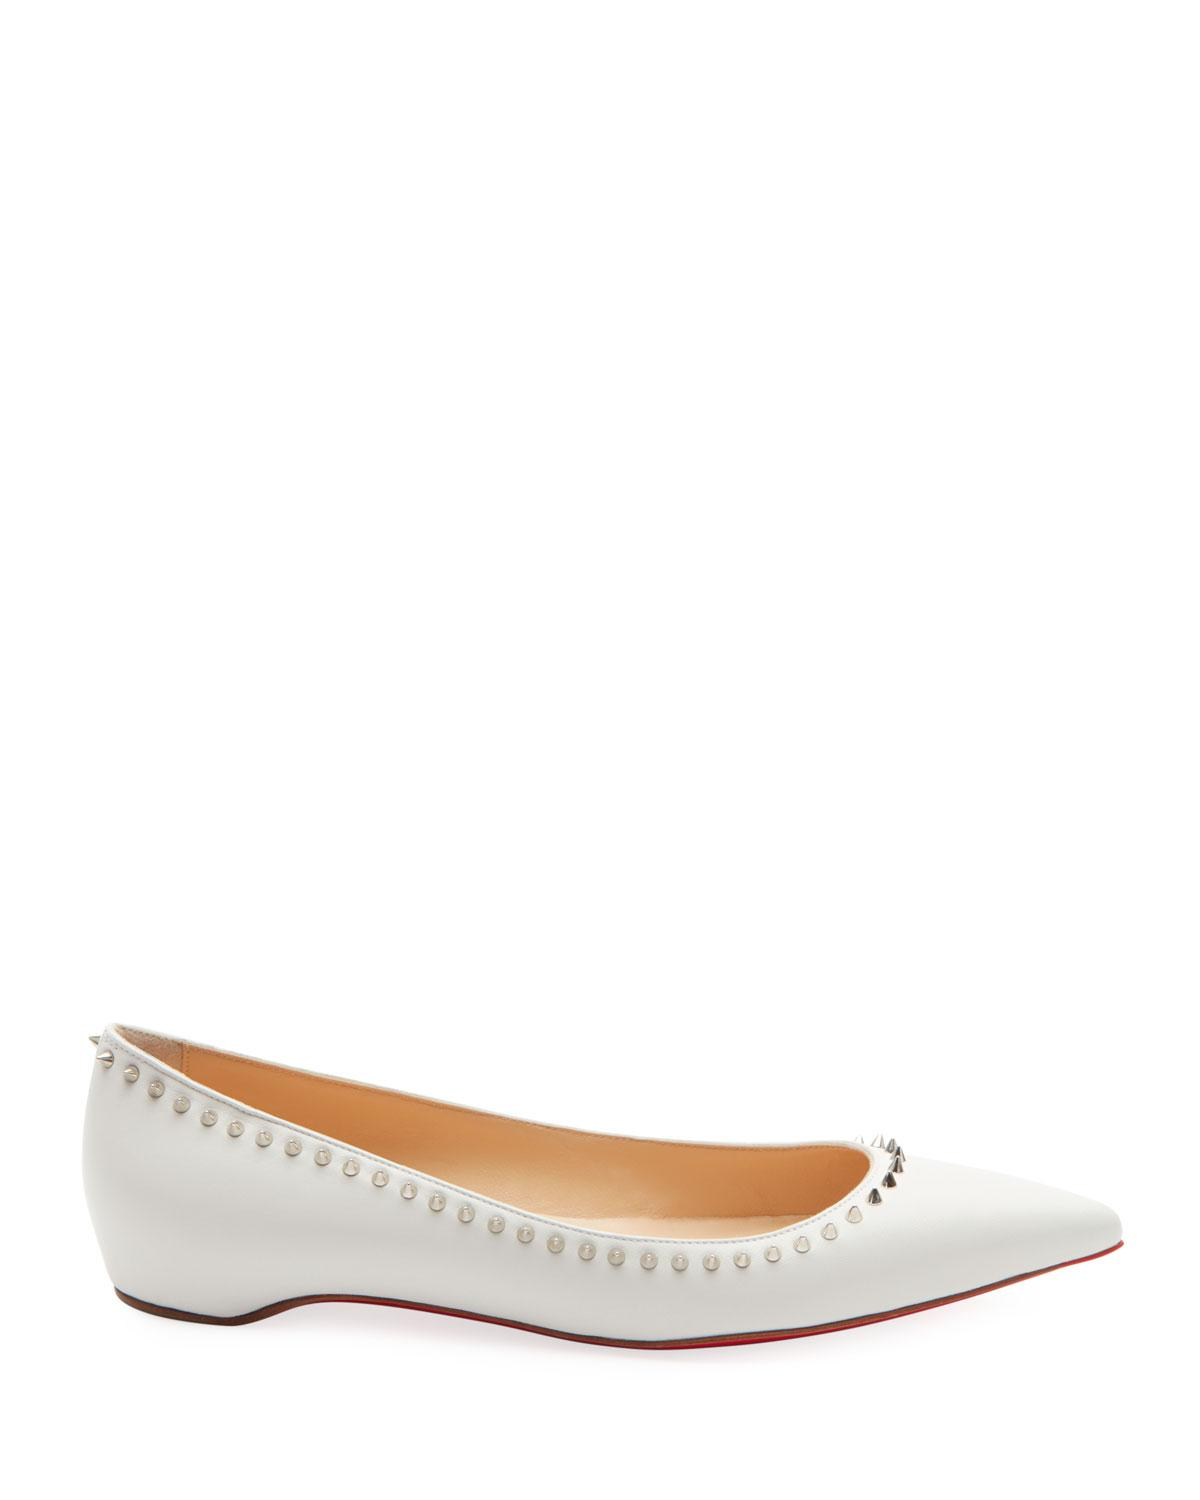 eb5c11961e5 Christian Louboutin White Anjalina Studded Red Sole Ballet Flats